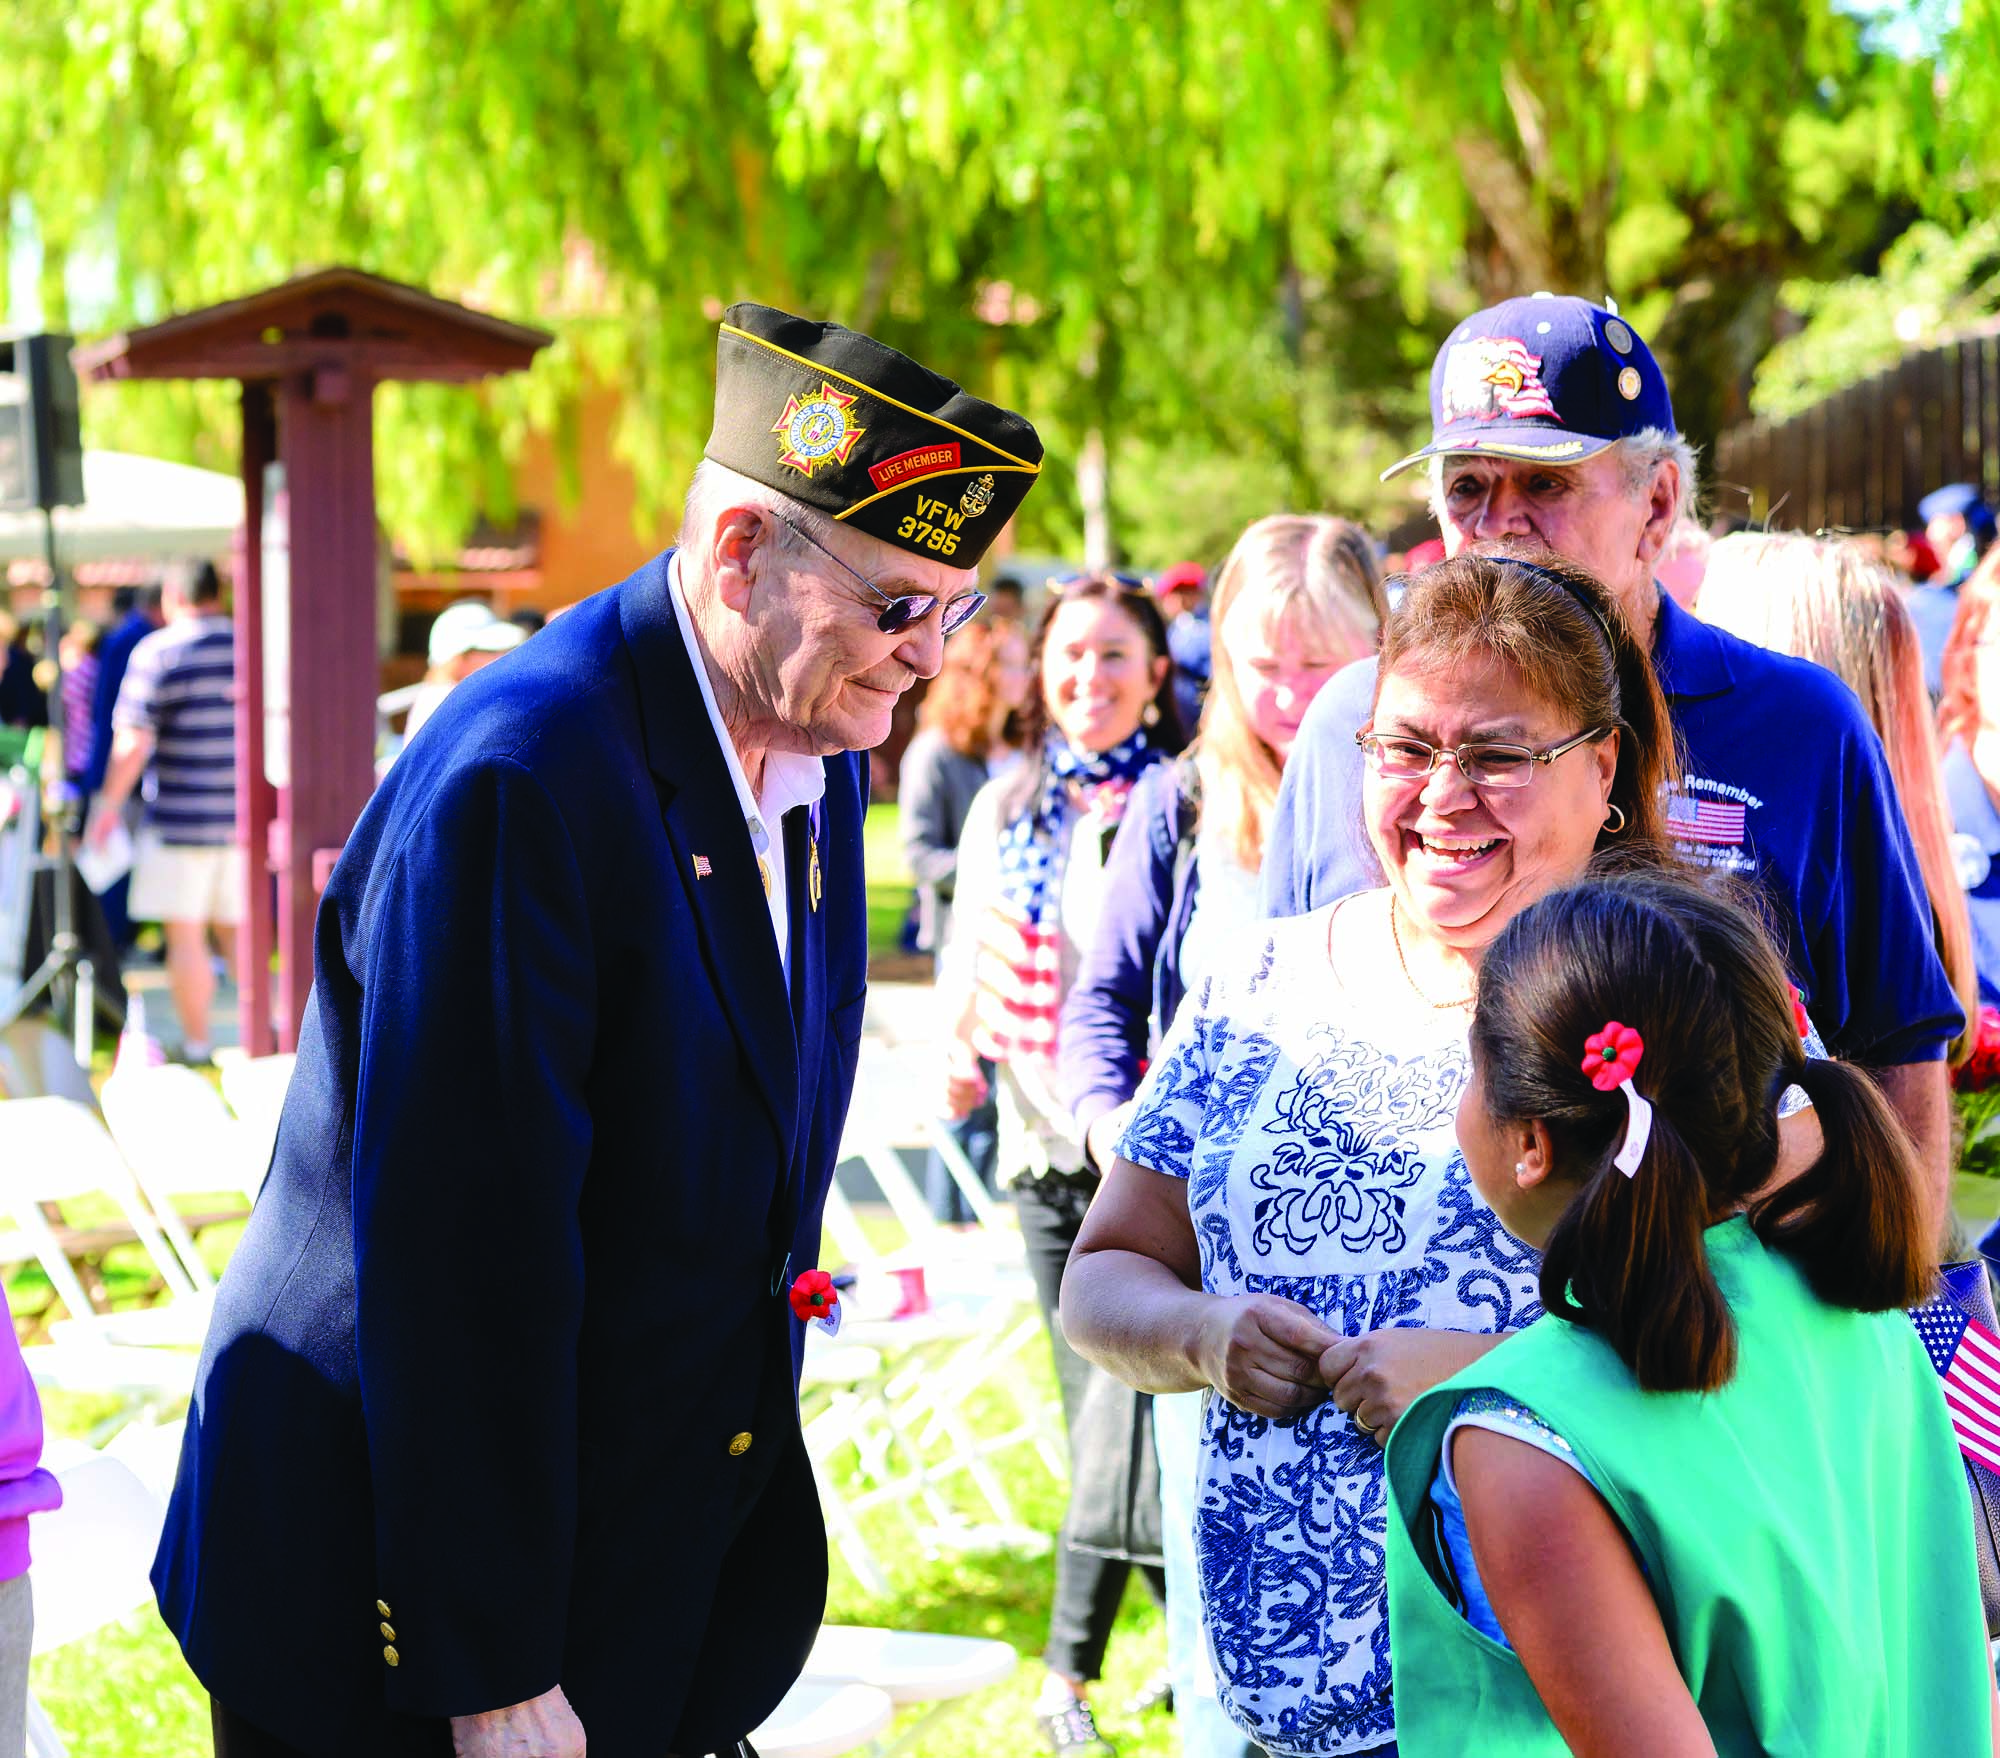 San Marcos ceremony honors veterans for their service